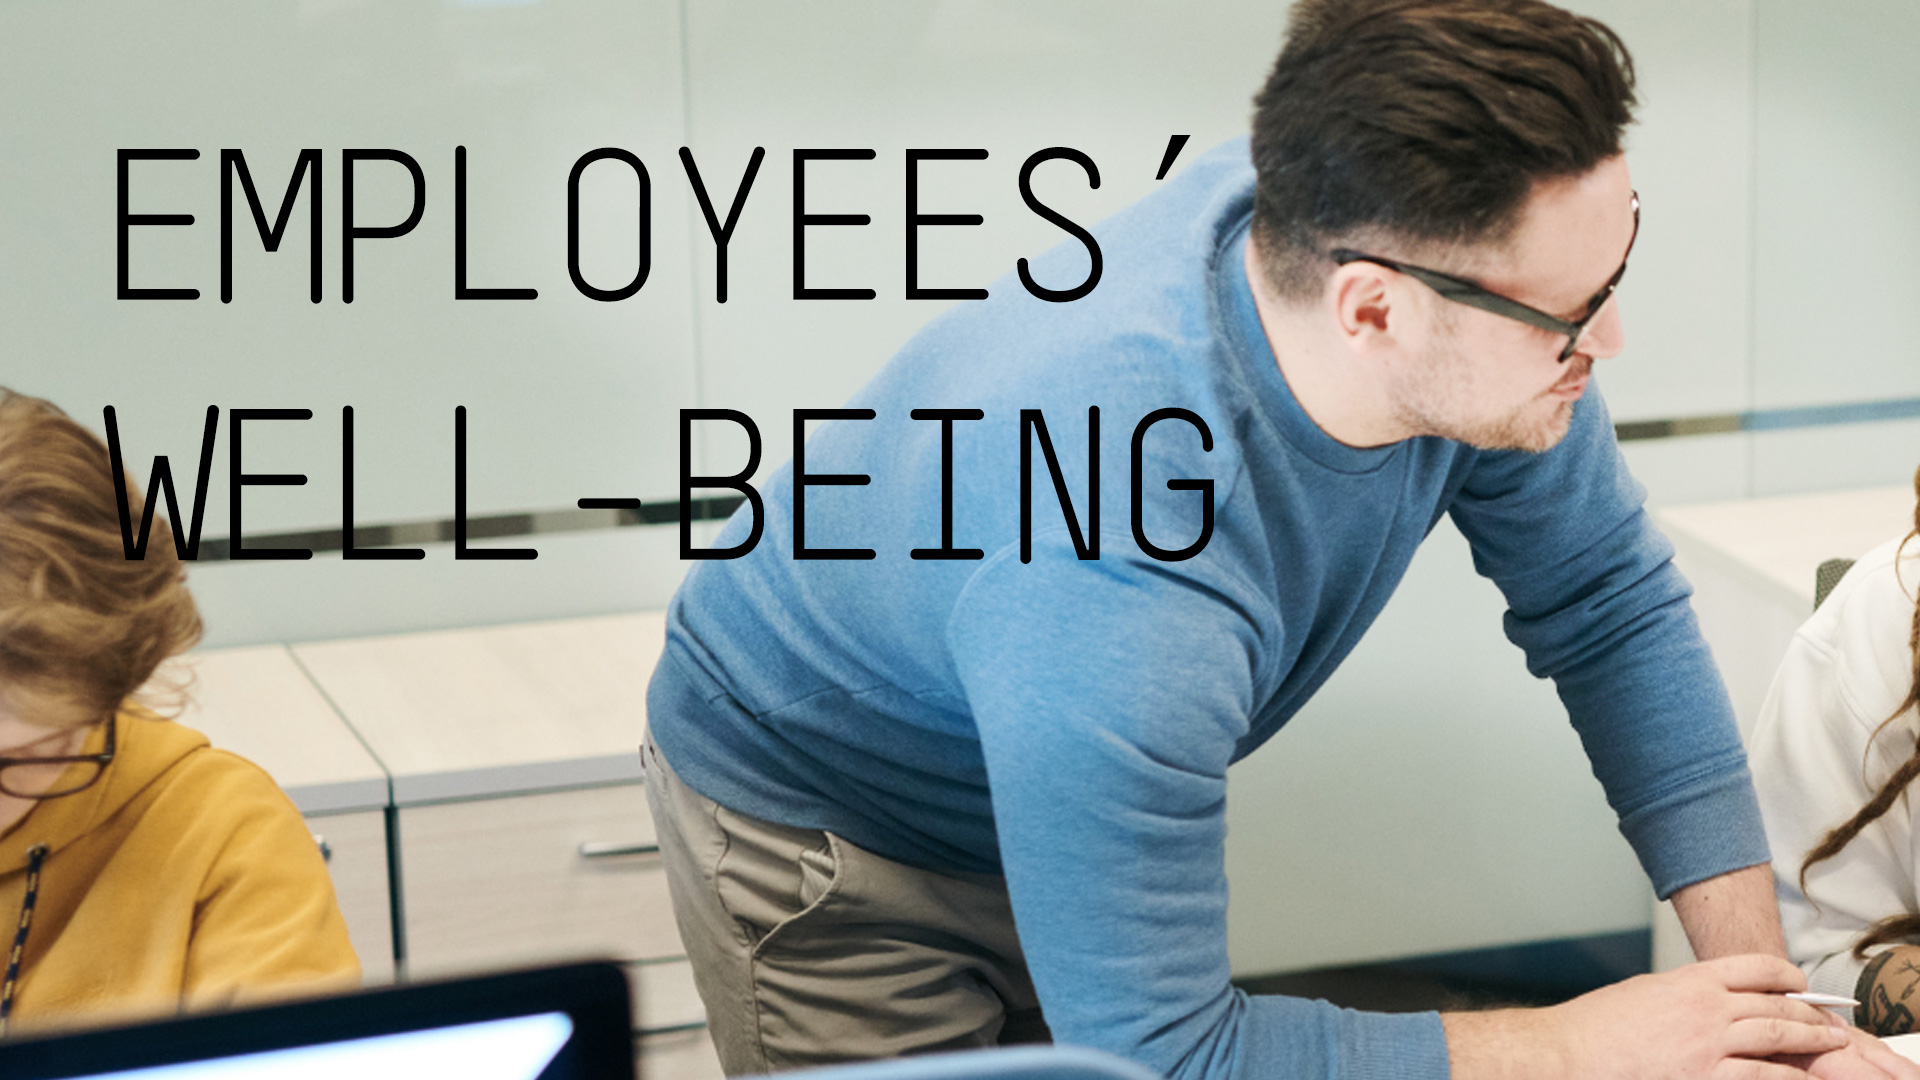 How to elevate employees wellbeing